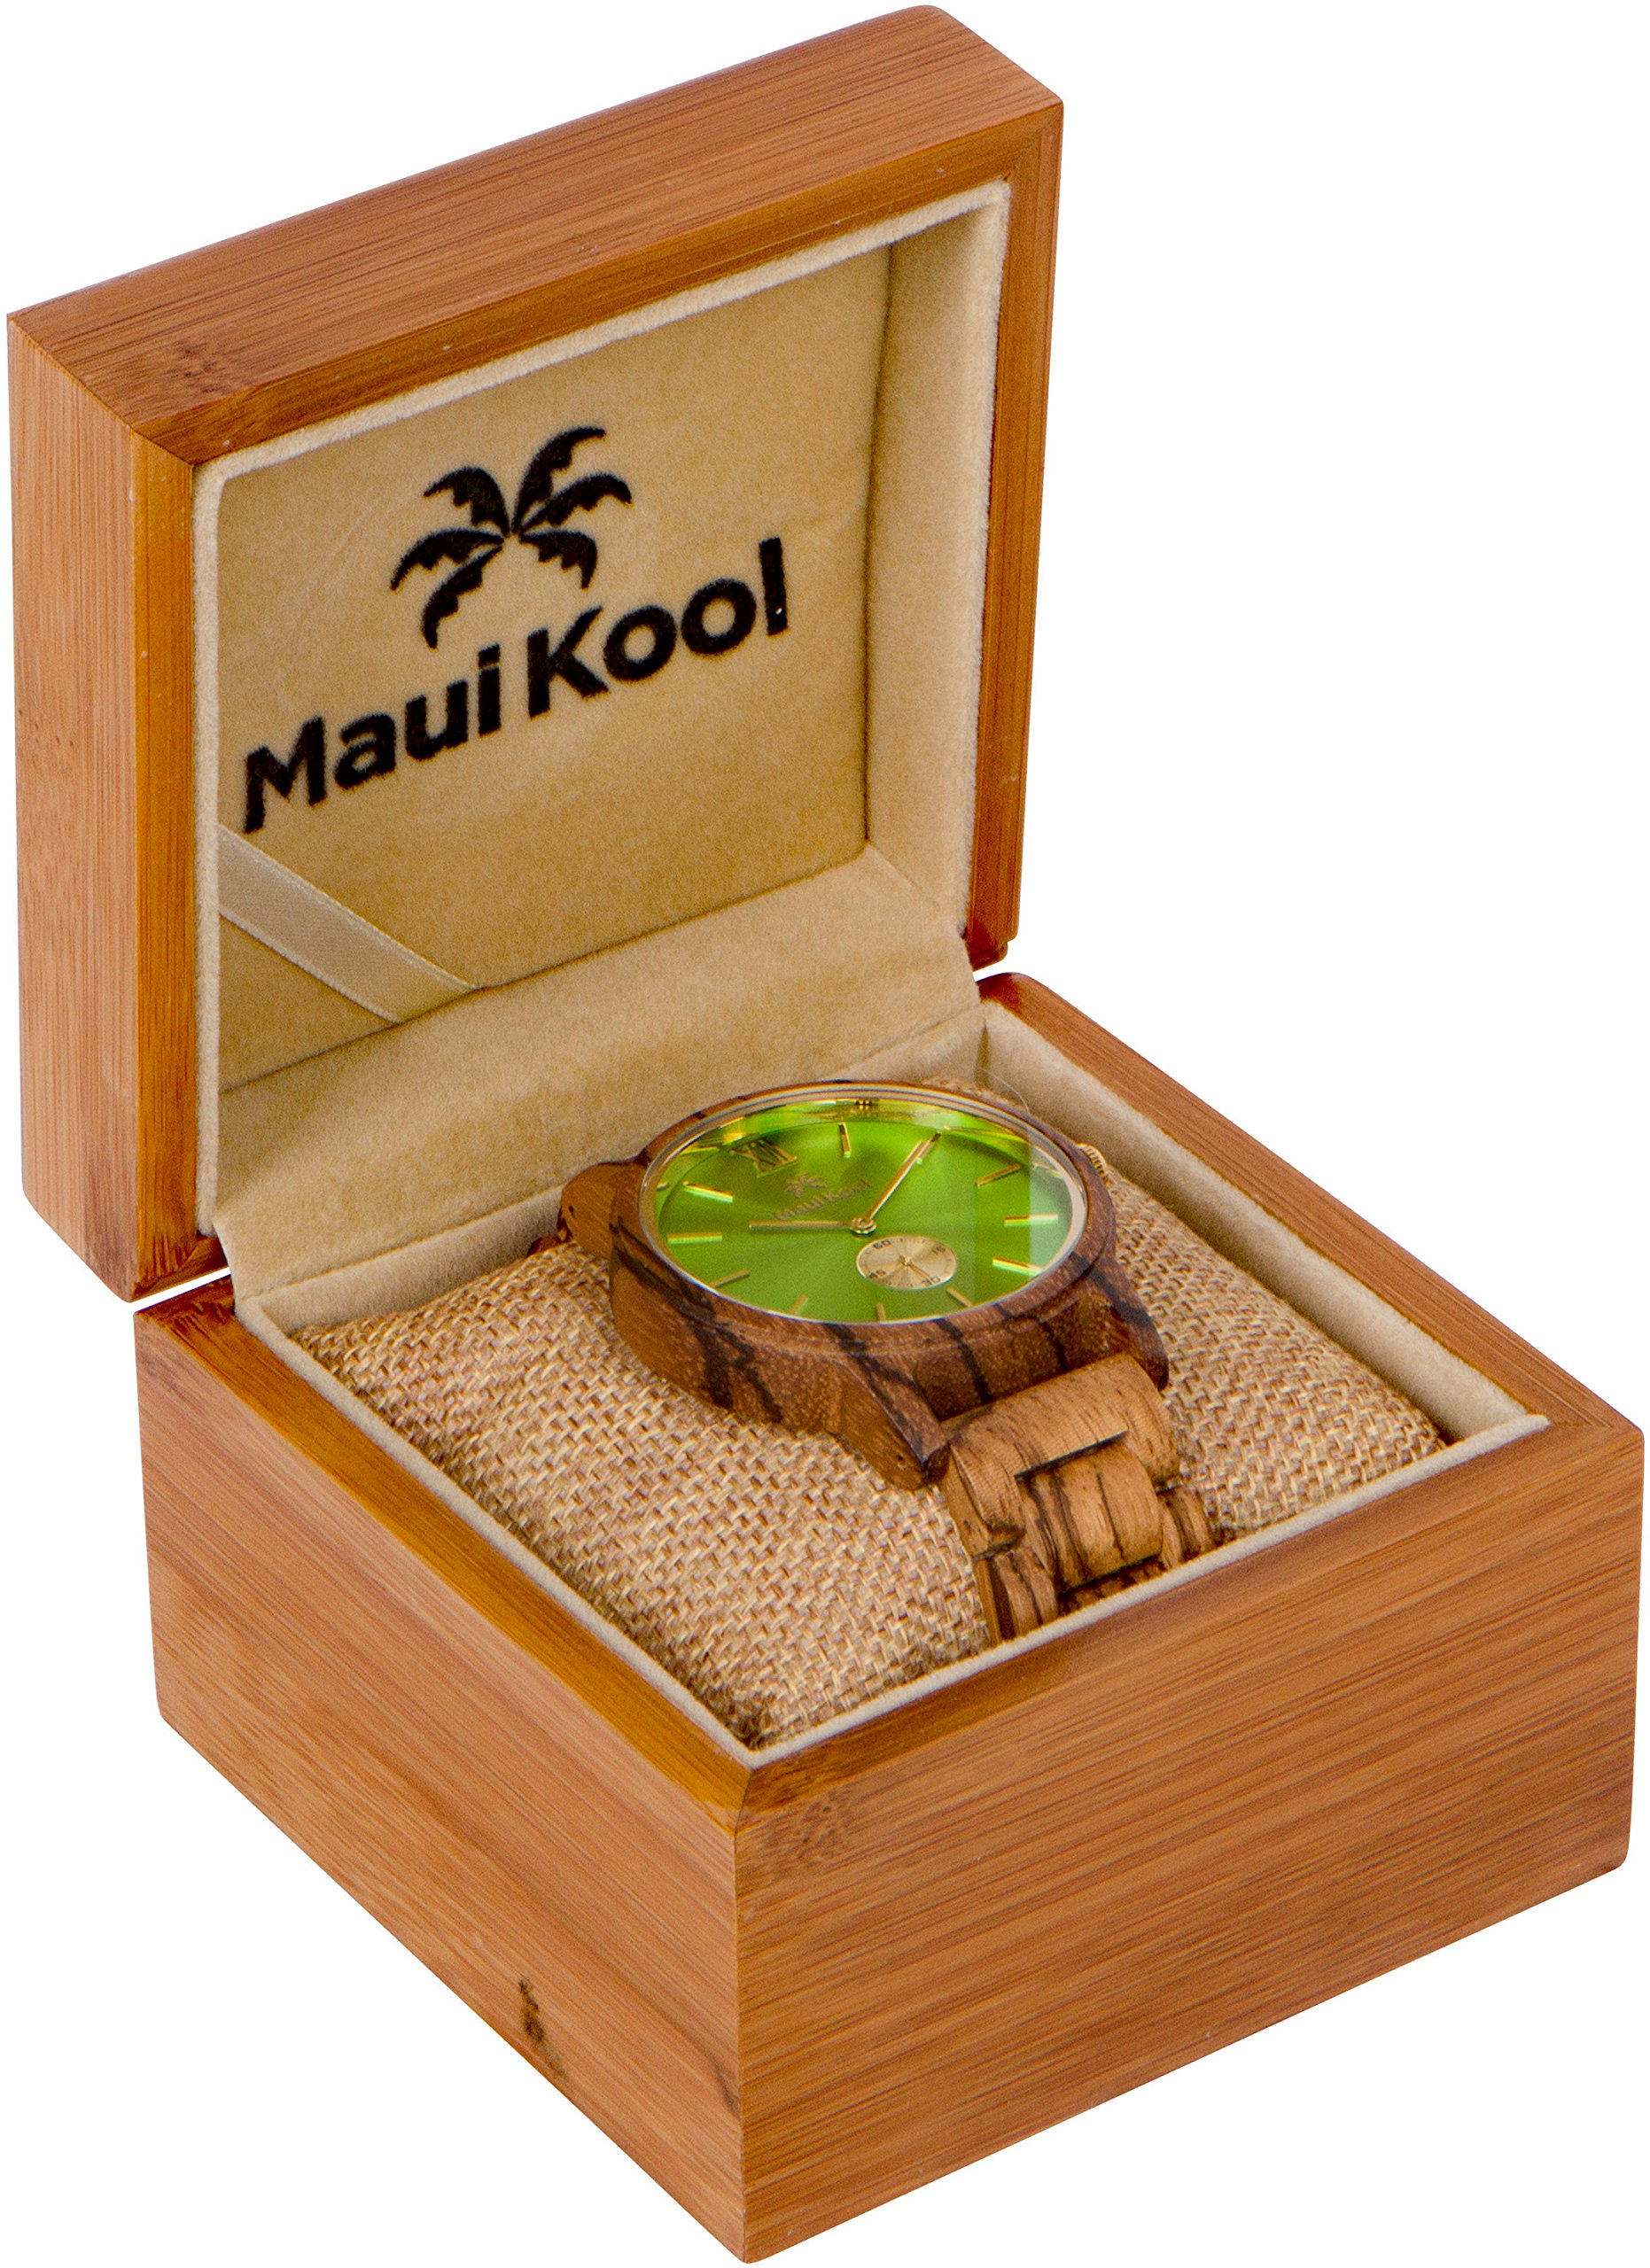 Wooden Watch For Men Maui Kool Kaanapali Collection Analog Large Face Wood Watch Bamboo Gift Box (C6 - Green Face) by Maui Kool (Image #1)